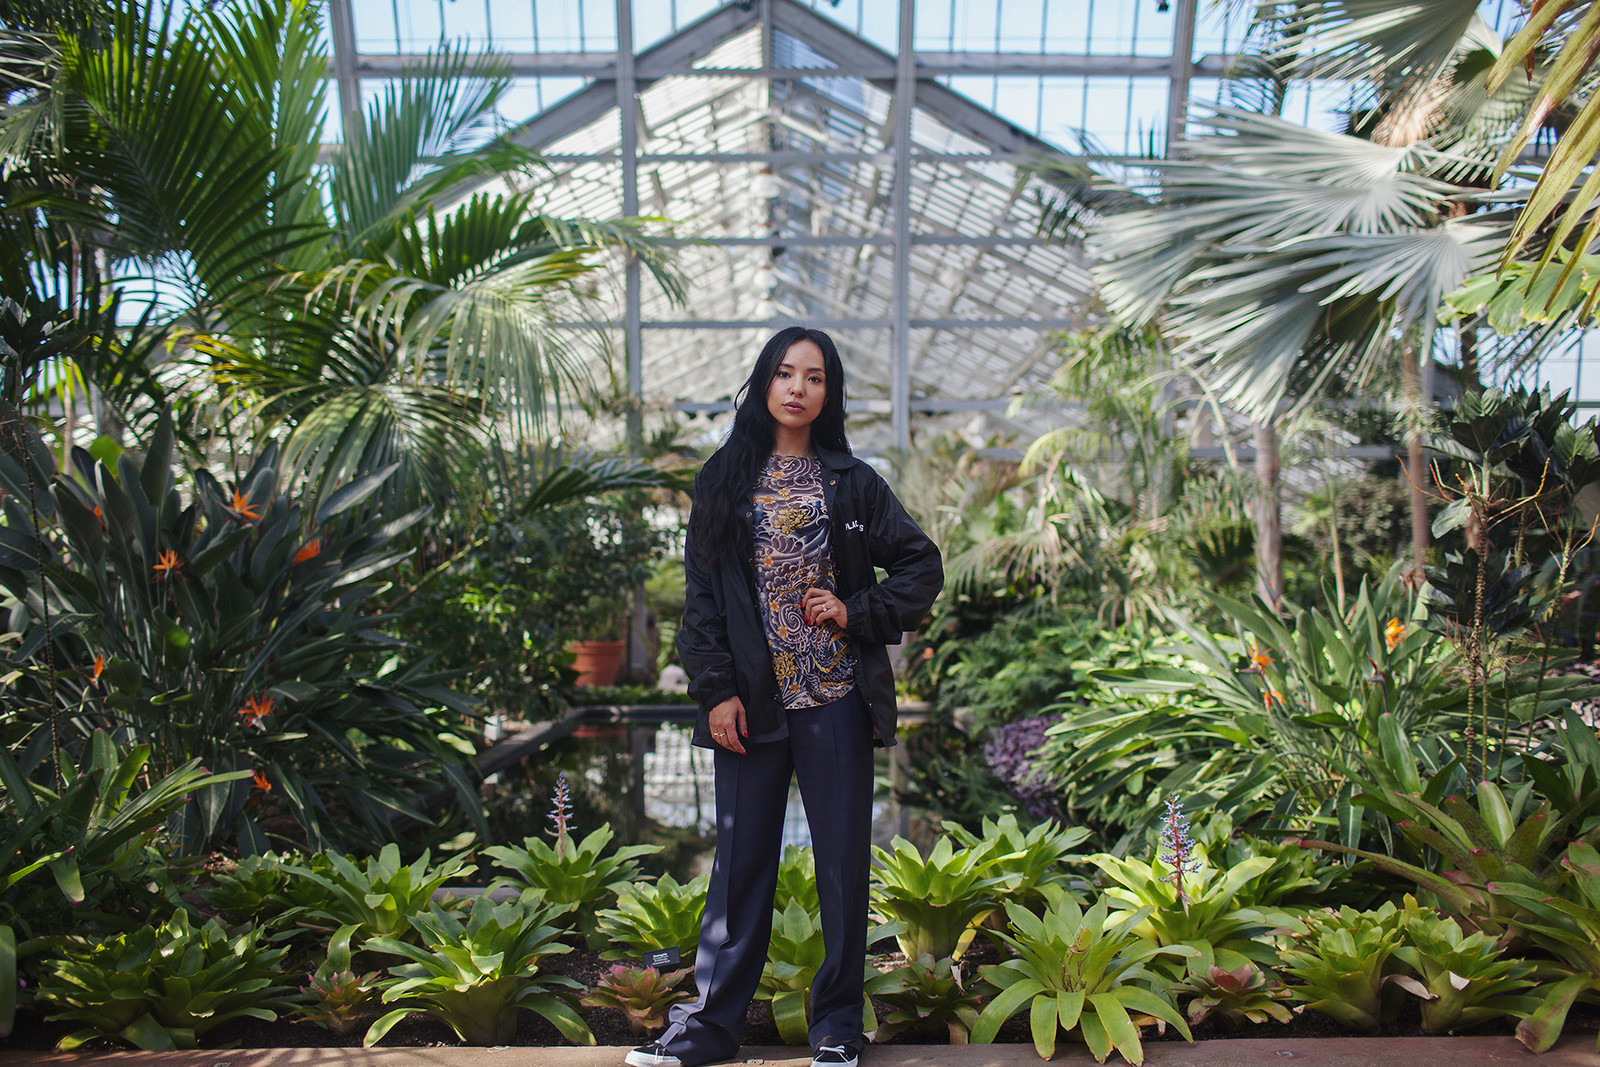 Elizabeth De La Piedra Smart Yehme2 Chicago City Guide Photographer Alcala's Fishtail Neon Garfield Park Conservatory Instagram